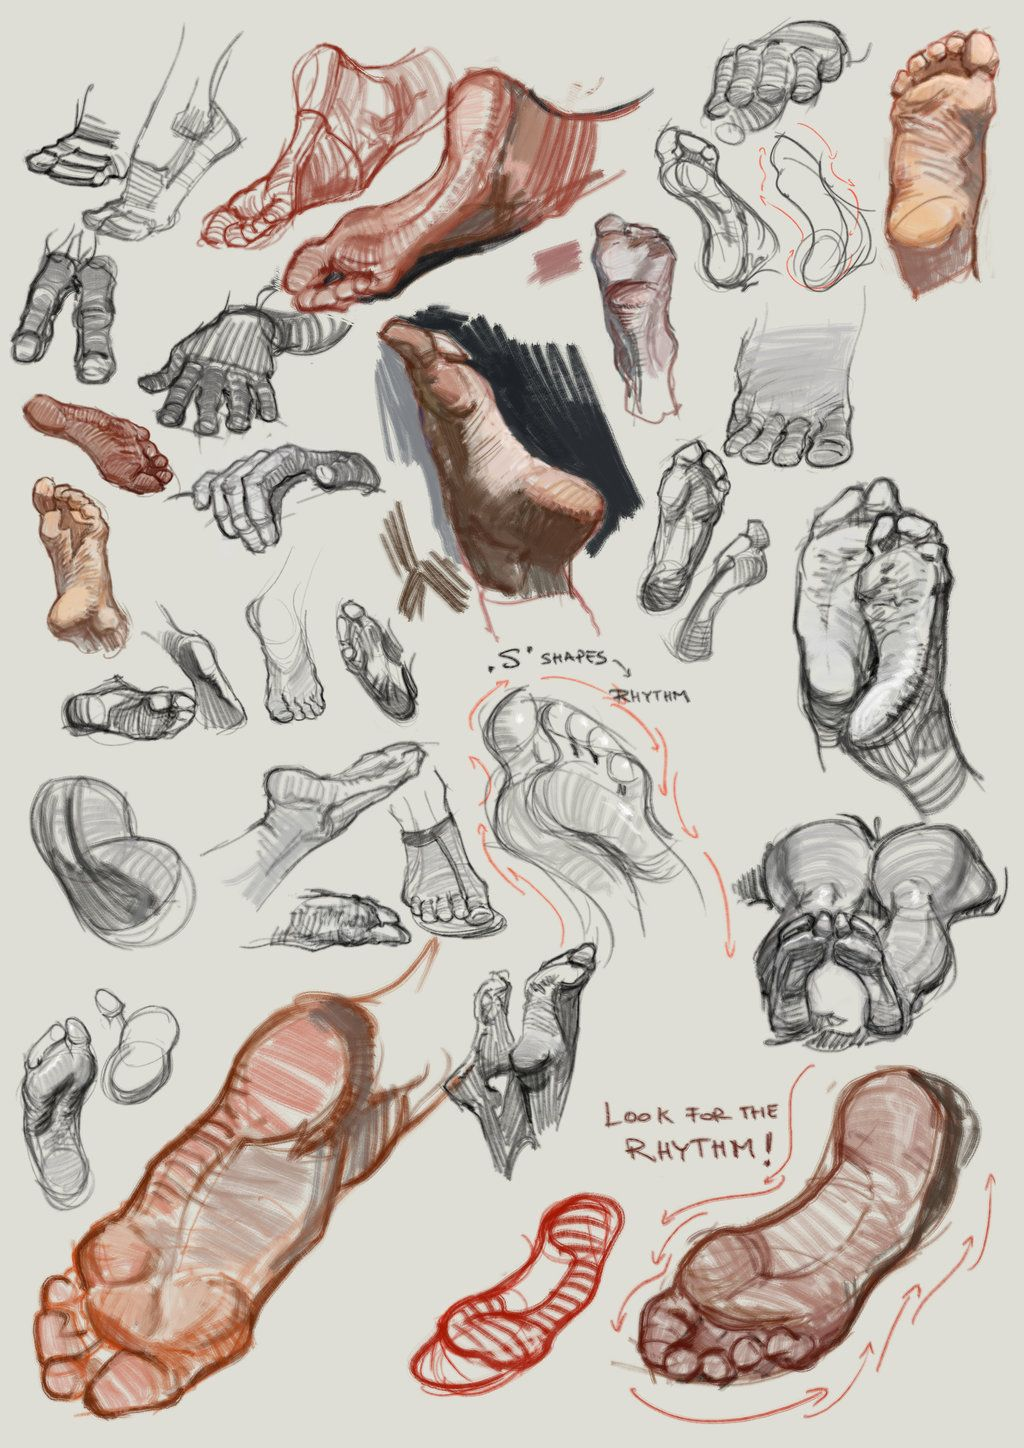 http://fc04.deviantart.net/fs71/i/2014/310/4/c/feet_studies_6nov_by_vladgheneli-d85ggy1.jpg   ★ || CHARACTER DESIGN REFERENCES (https://www.facebook.com/CharacterDesignReferences & https://www.pinterest.com/characterdesigh) • Love Character Design? Join the Character Design Challenge (link→ https://www.facebook.com/groups/CharacterDesignChallenge) Share your unique vision of a theme, promote your art in a community of over 25.000 artists! || ★